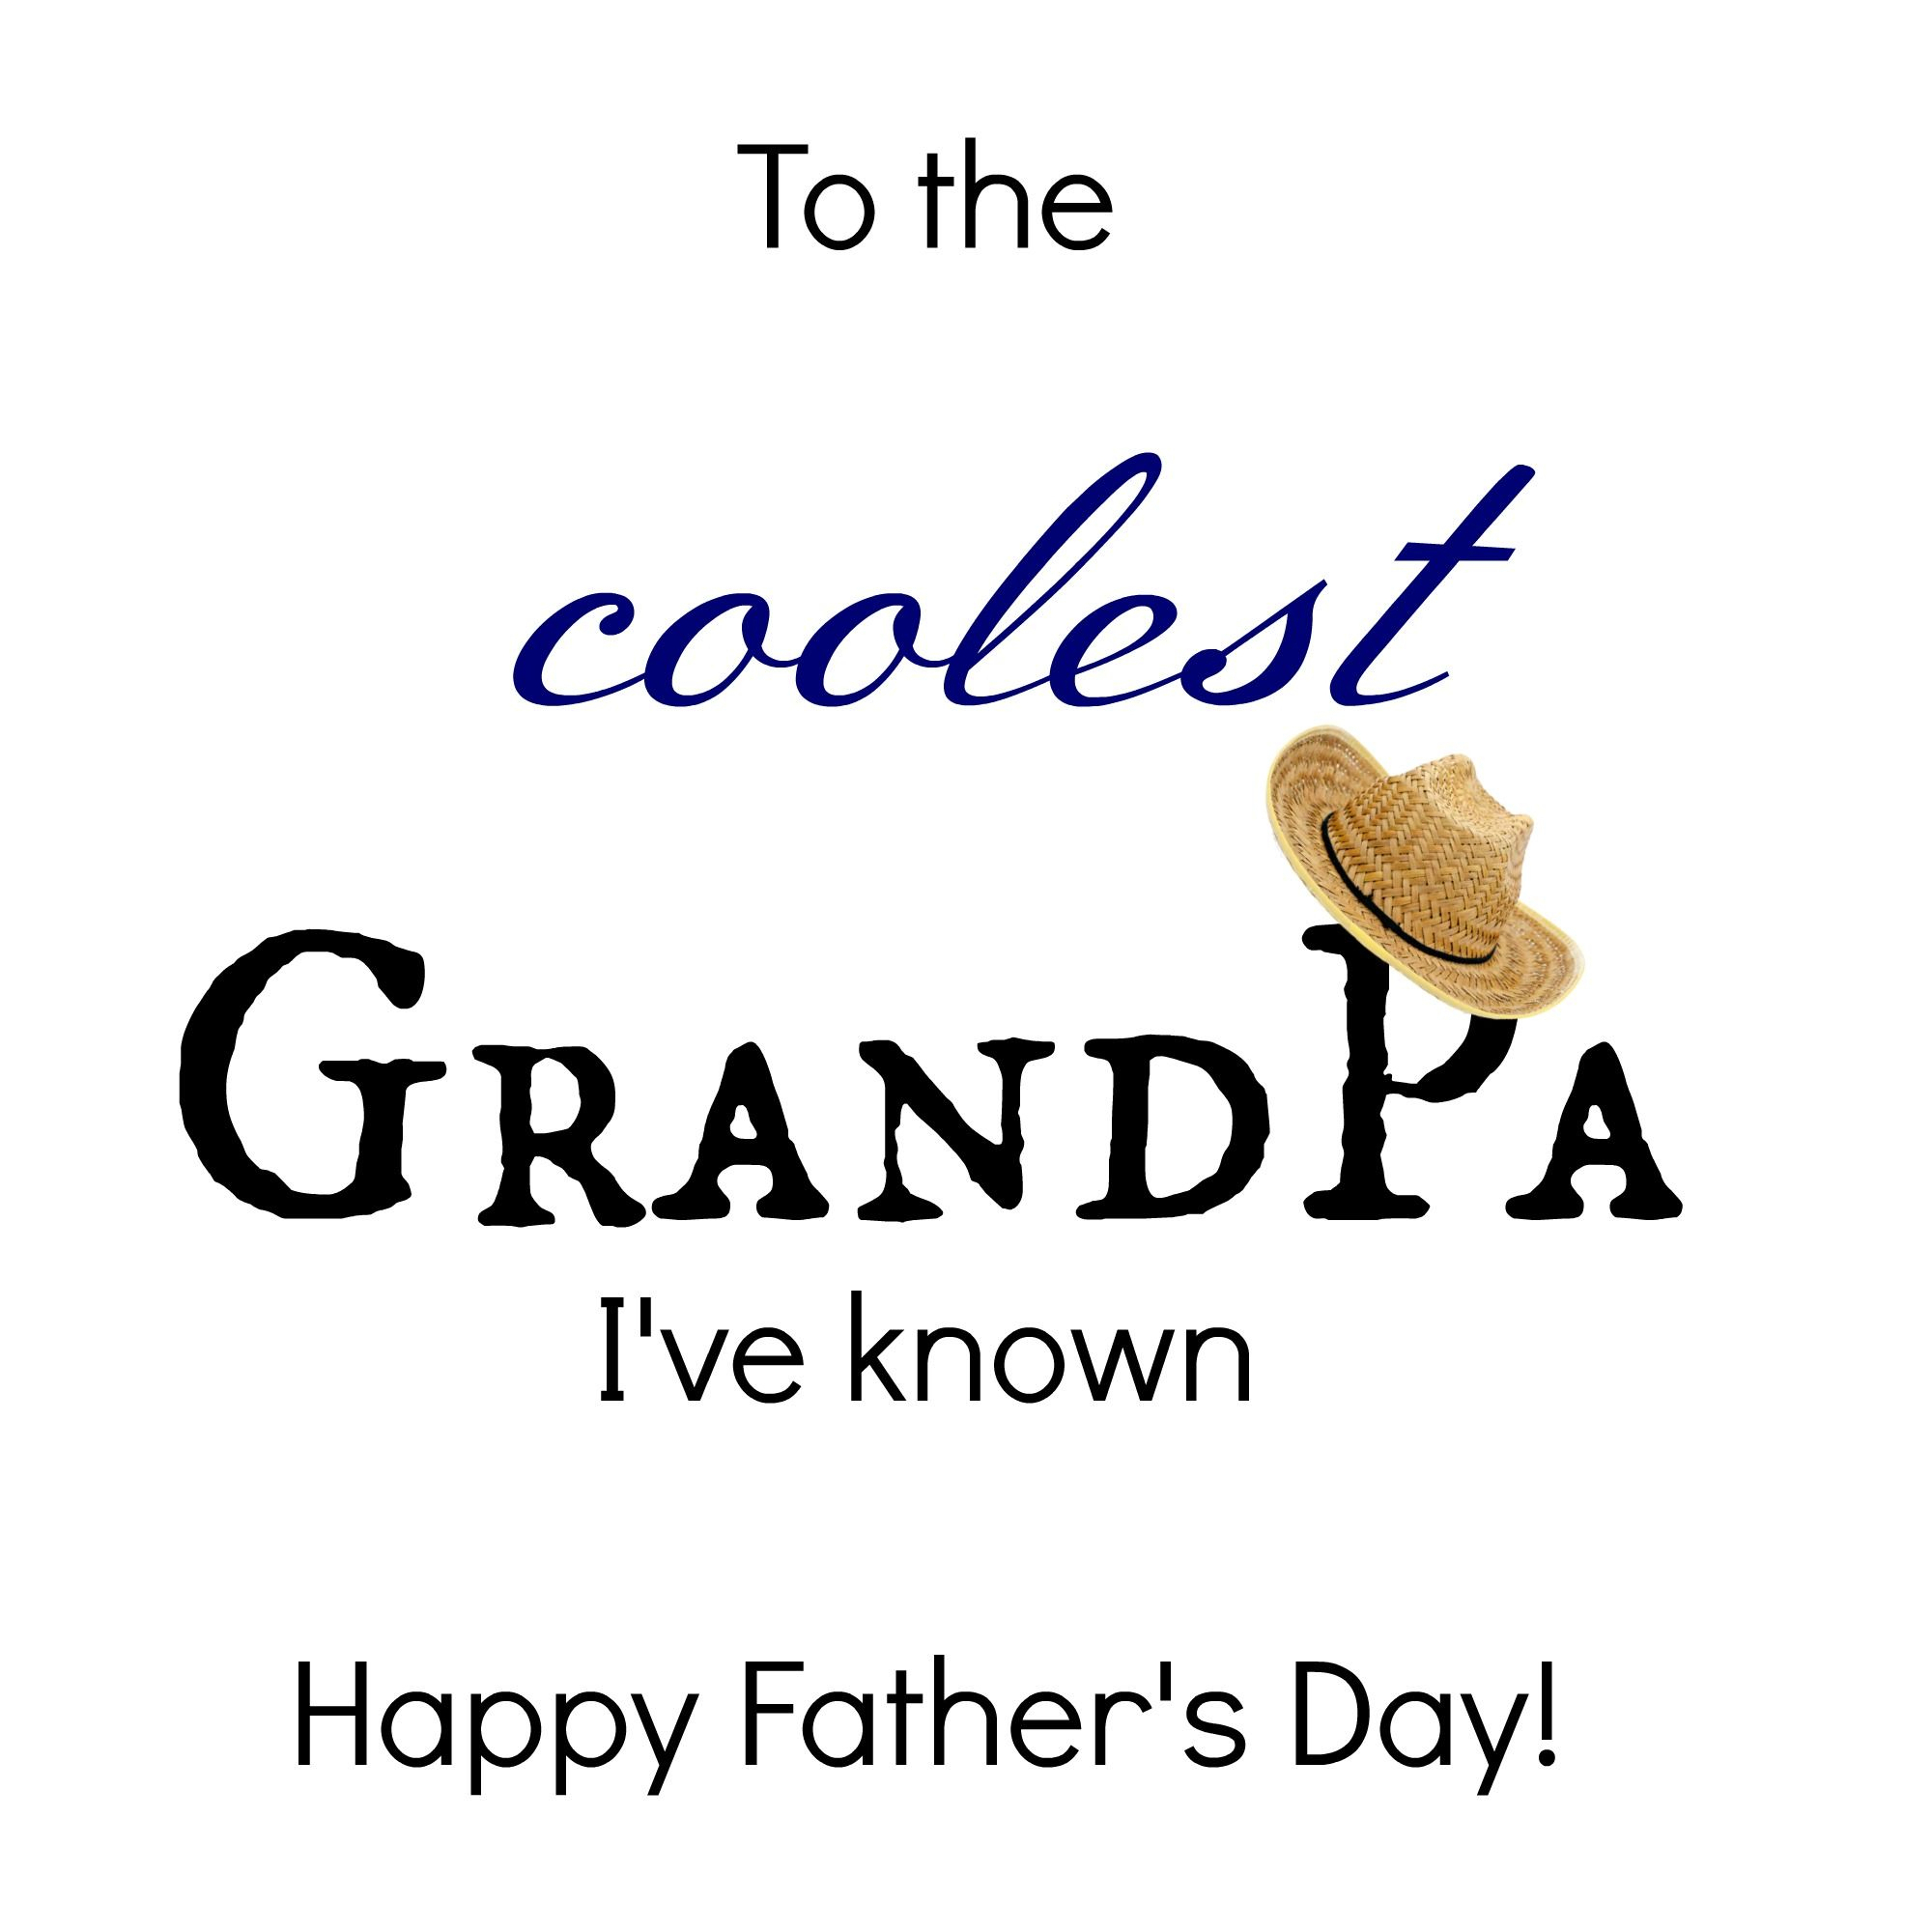 24 Free Printable Father's Day Cards Kittybabylove - Free Printable Happy Fathers Day Grandpa Cards